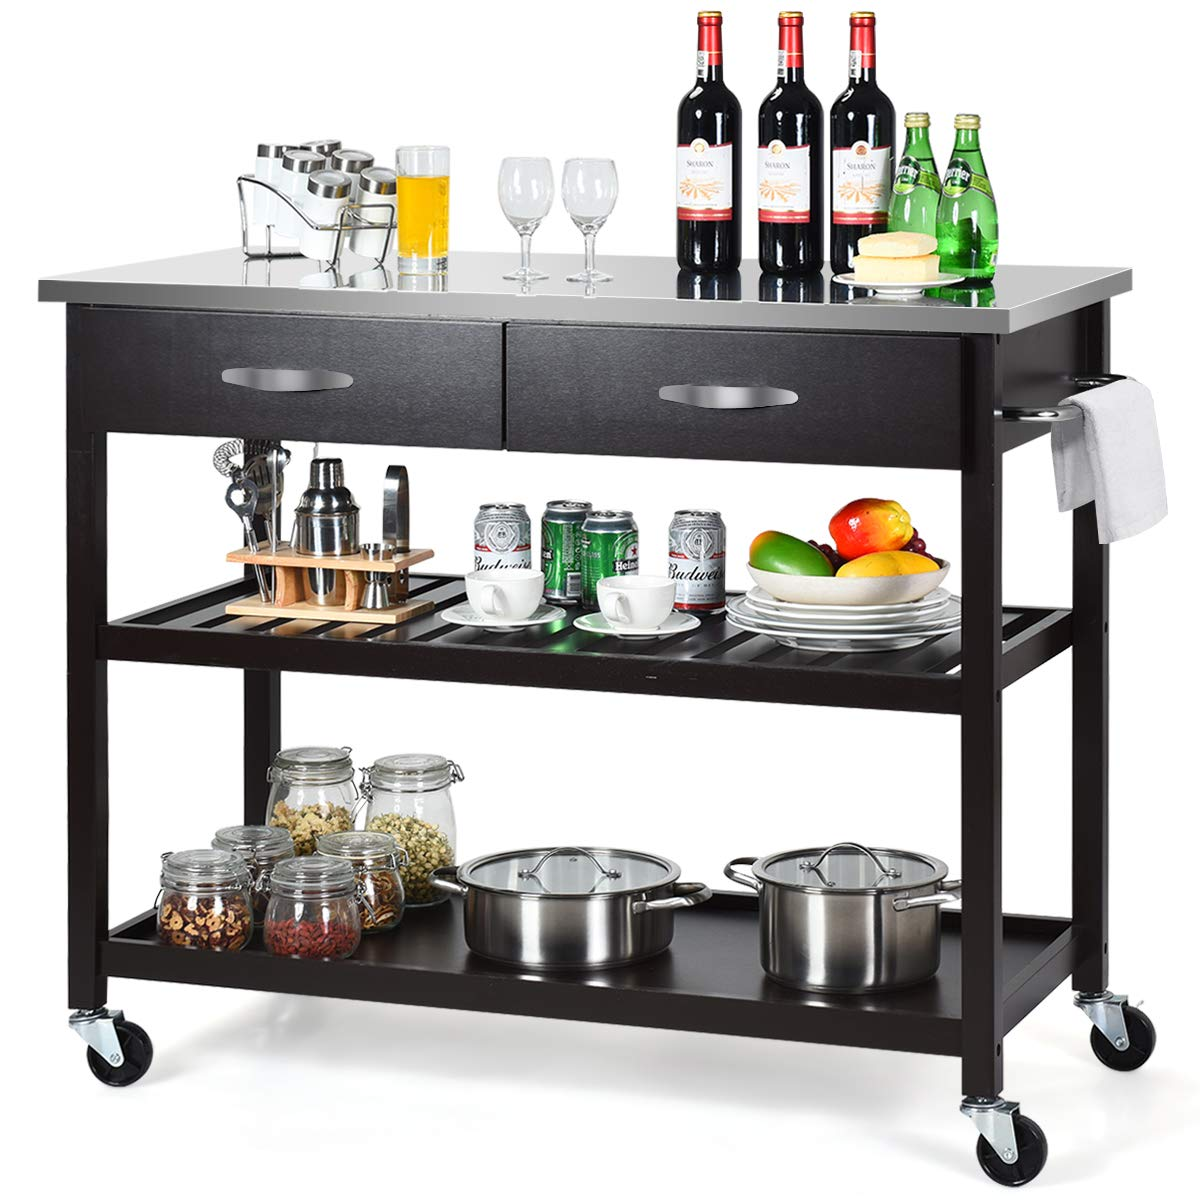 Giantex Kitchen Trolley Cart Rolling Island Cart Serving Cart Large Storage with Stainless Steel Countertop, Lockable Wheels, 2 Drawers and Shelf Utility Cart for Home and Restaurant Espresso